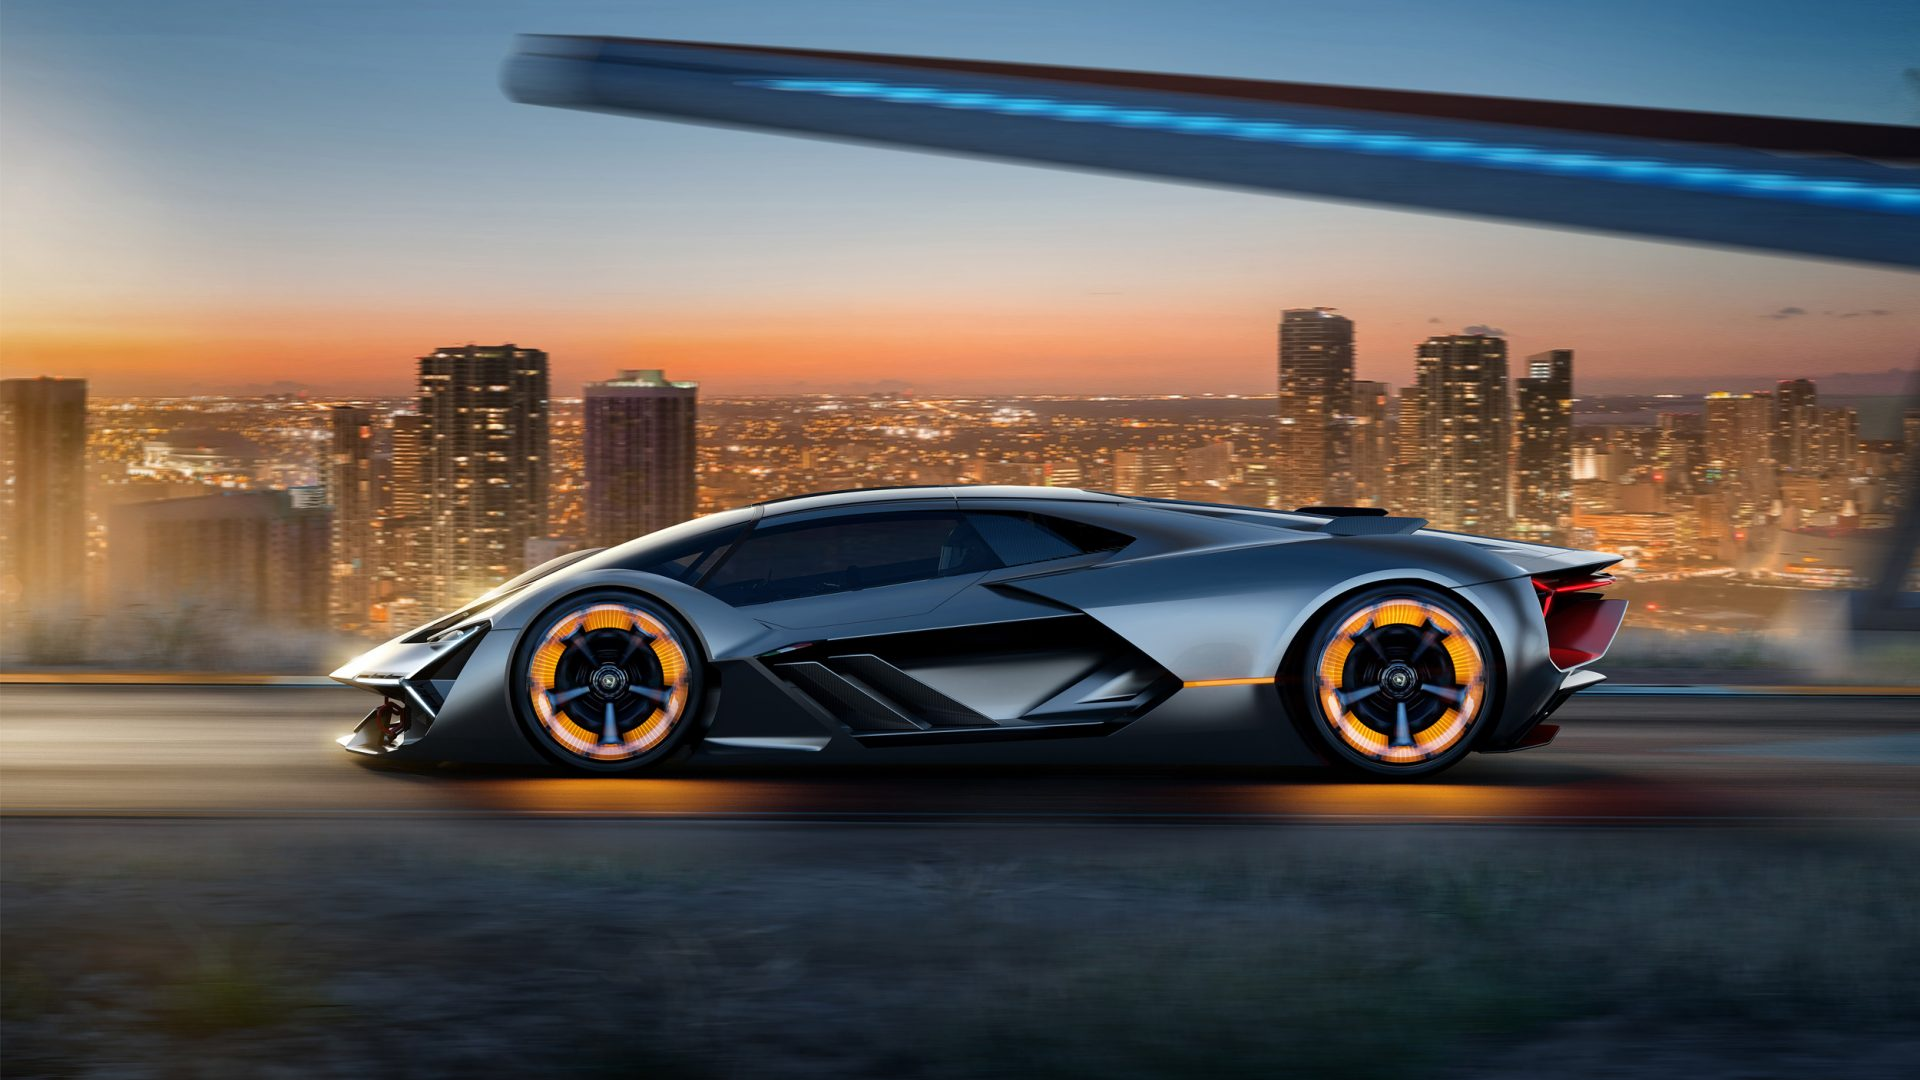 Lamborghini unveils the self-healing supercar of the future""